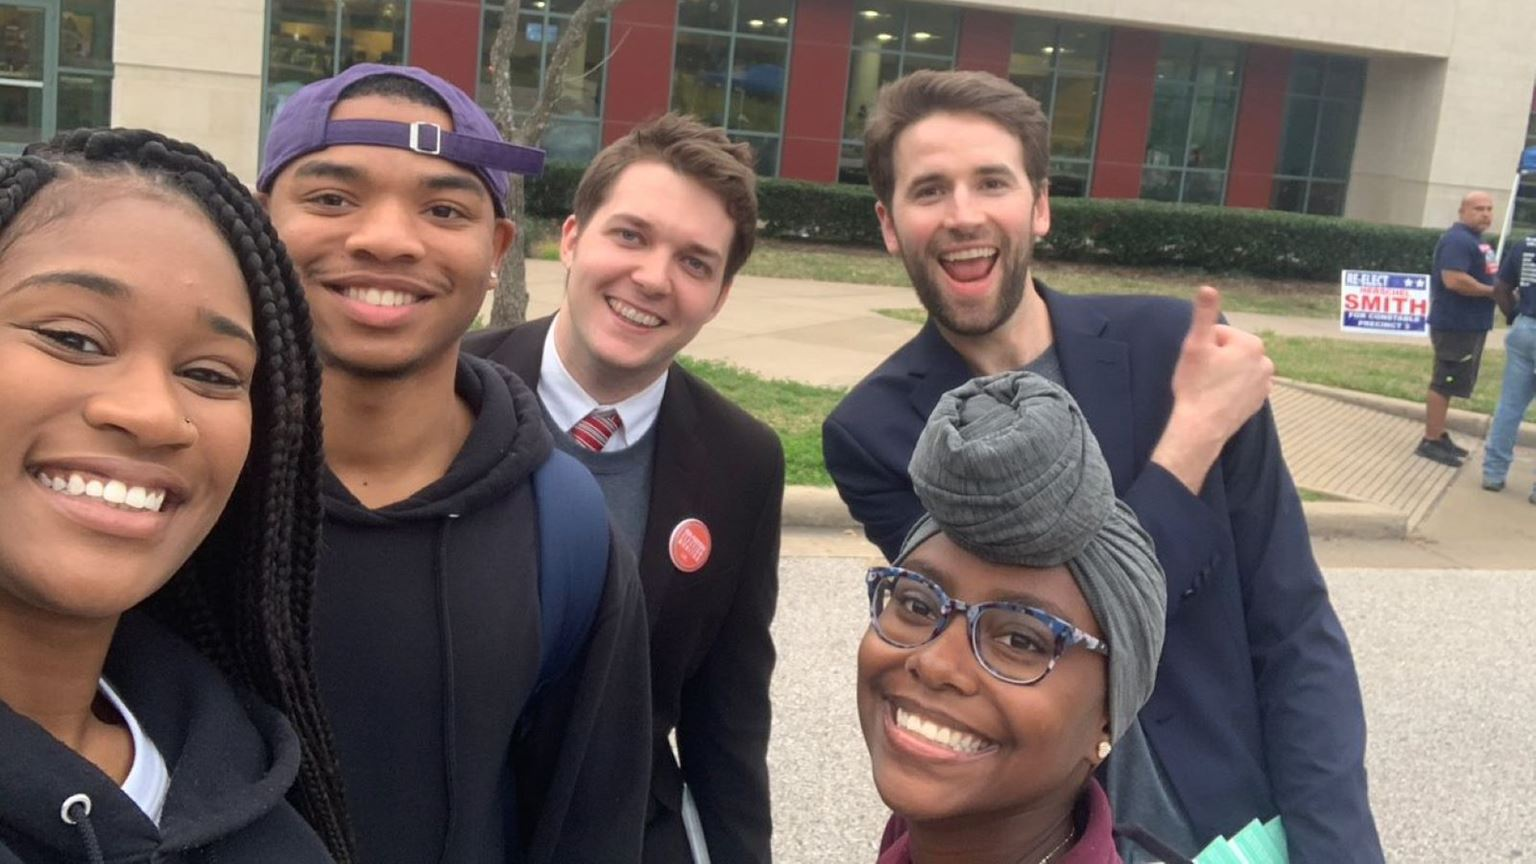 Young volunteers outside of a polling location